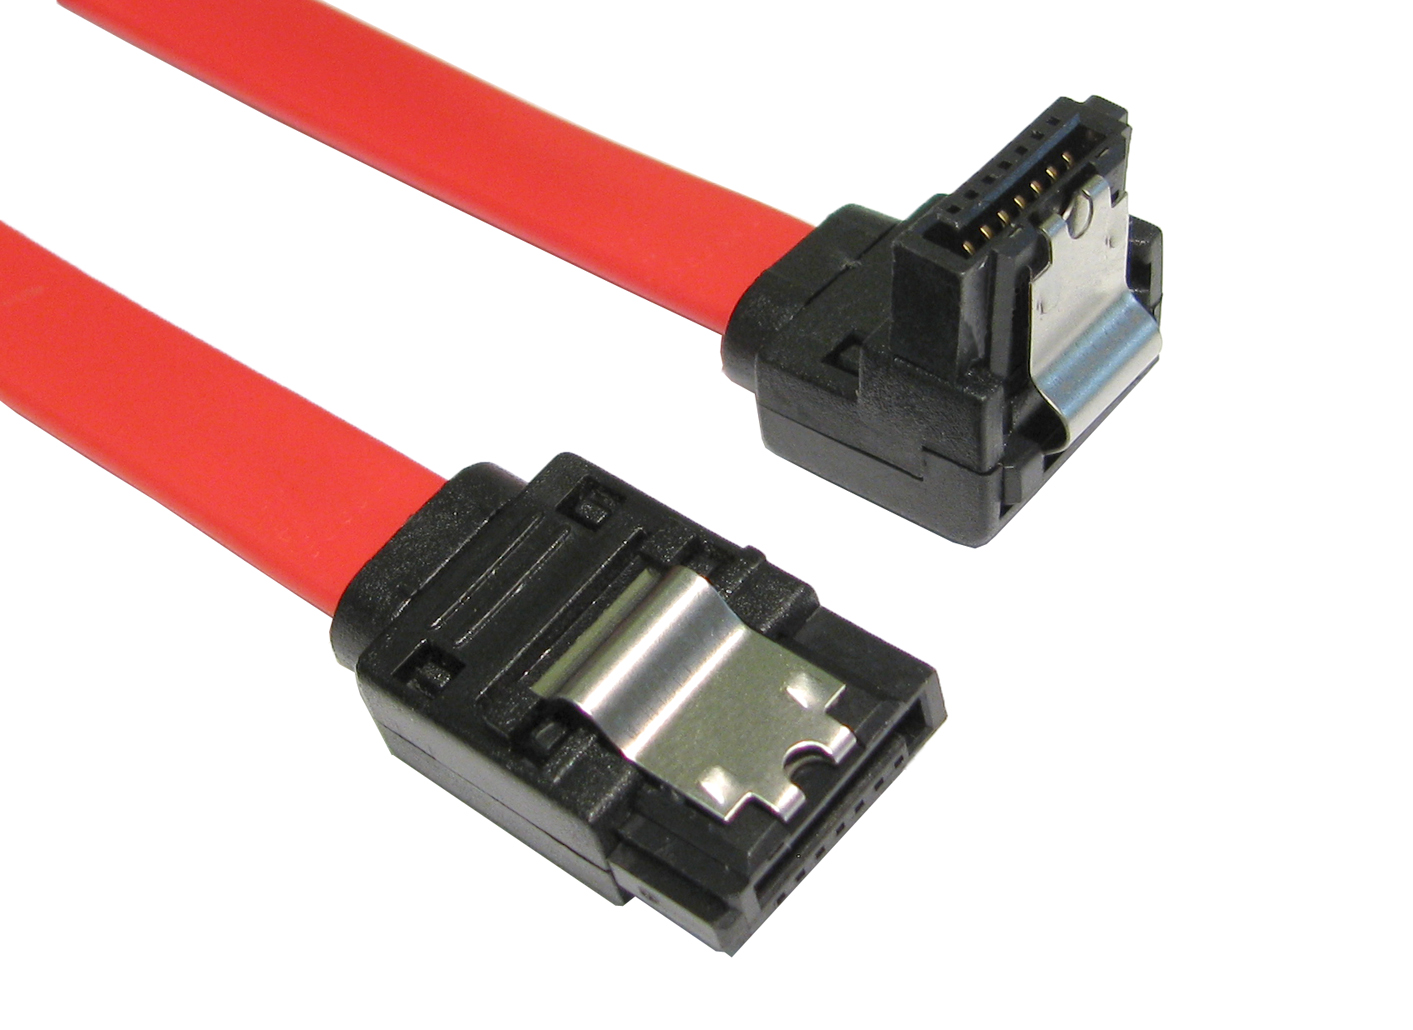 SATA Data Cable 7pin/7pin with latch